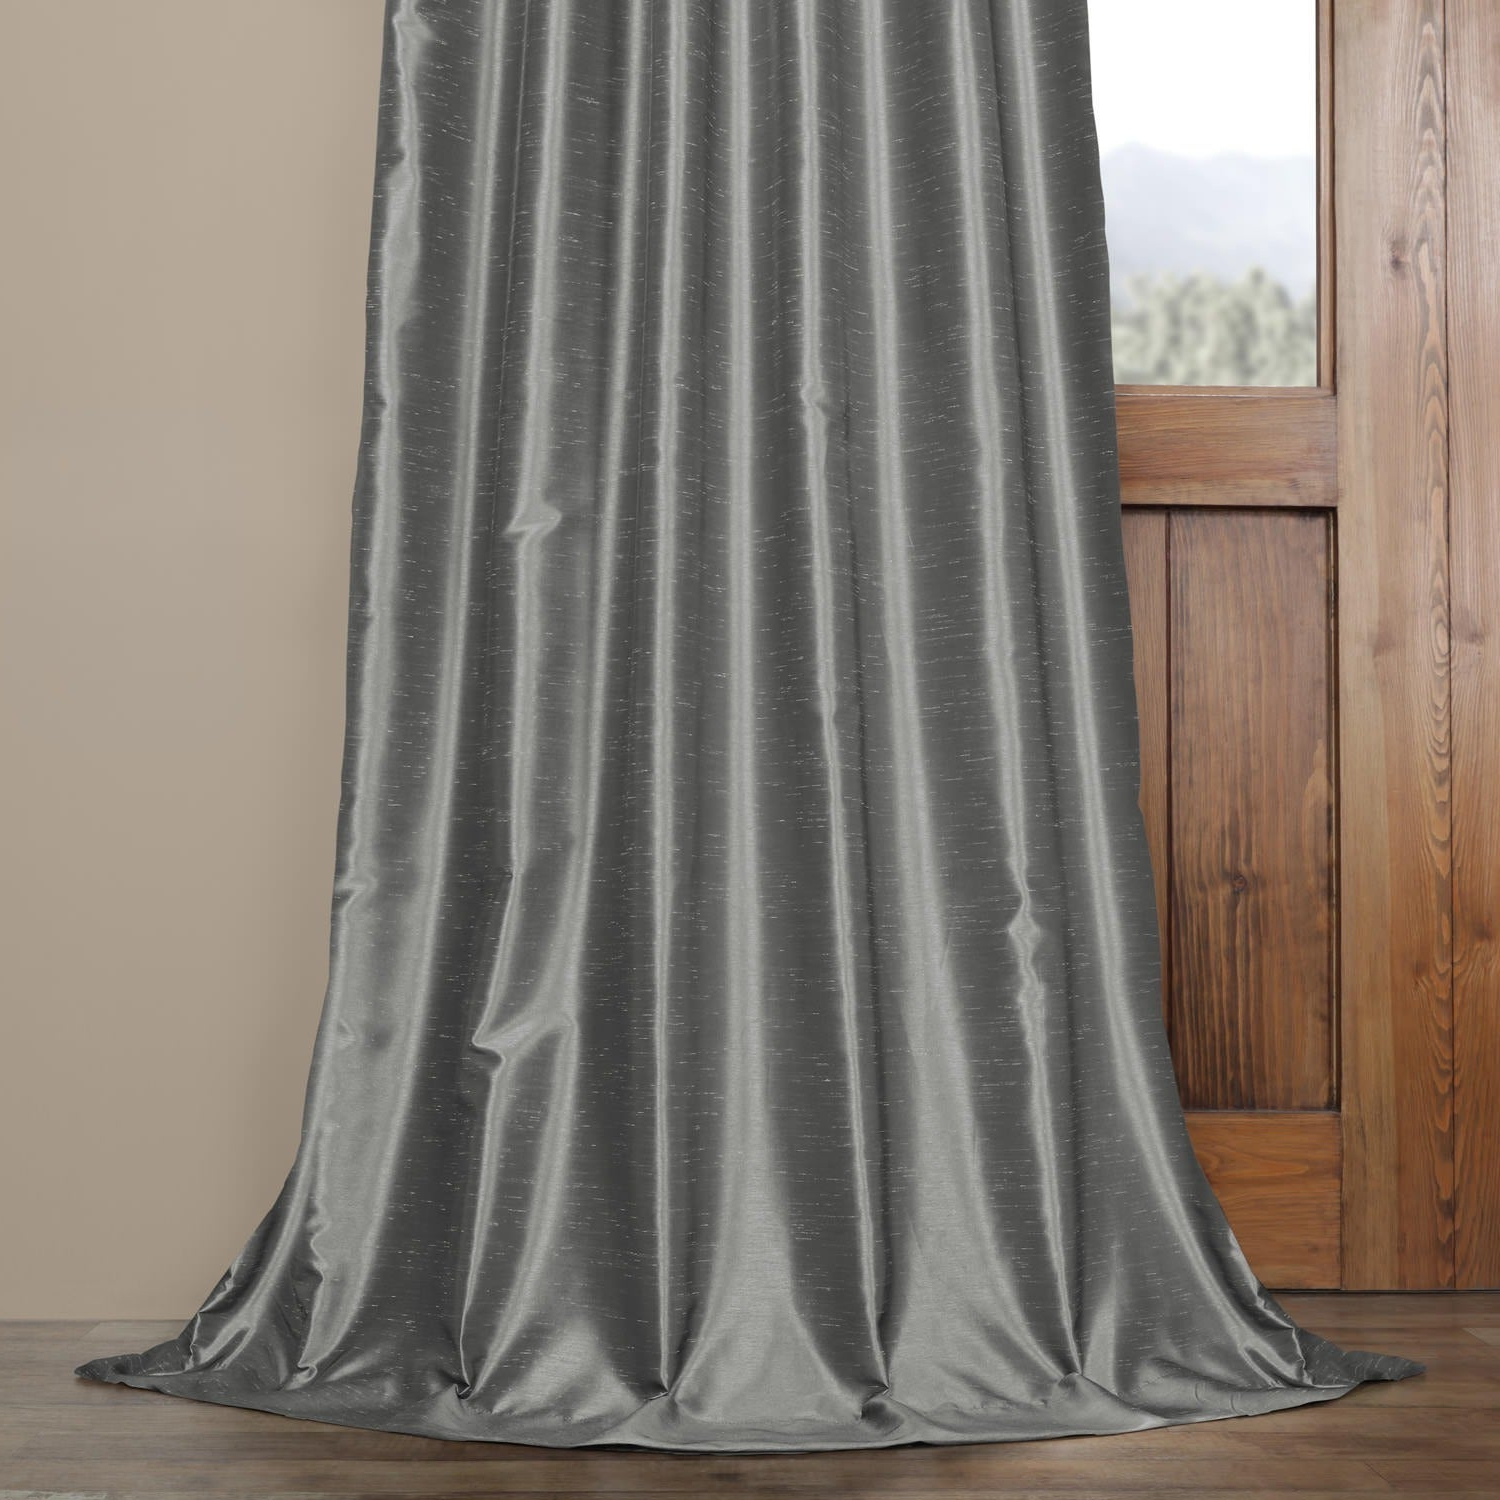 Most Recent Exclusive Fabrics Storm Grey Vintage Faux Textured Dupioni Single Silk  Curtain Panel Intended For Storm Grey Vintage Faux Textured Dupioni Single Silk Curtain Panels (View 7 of 20)